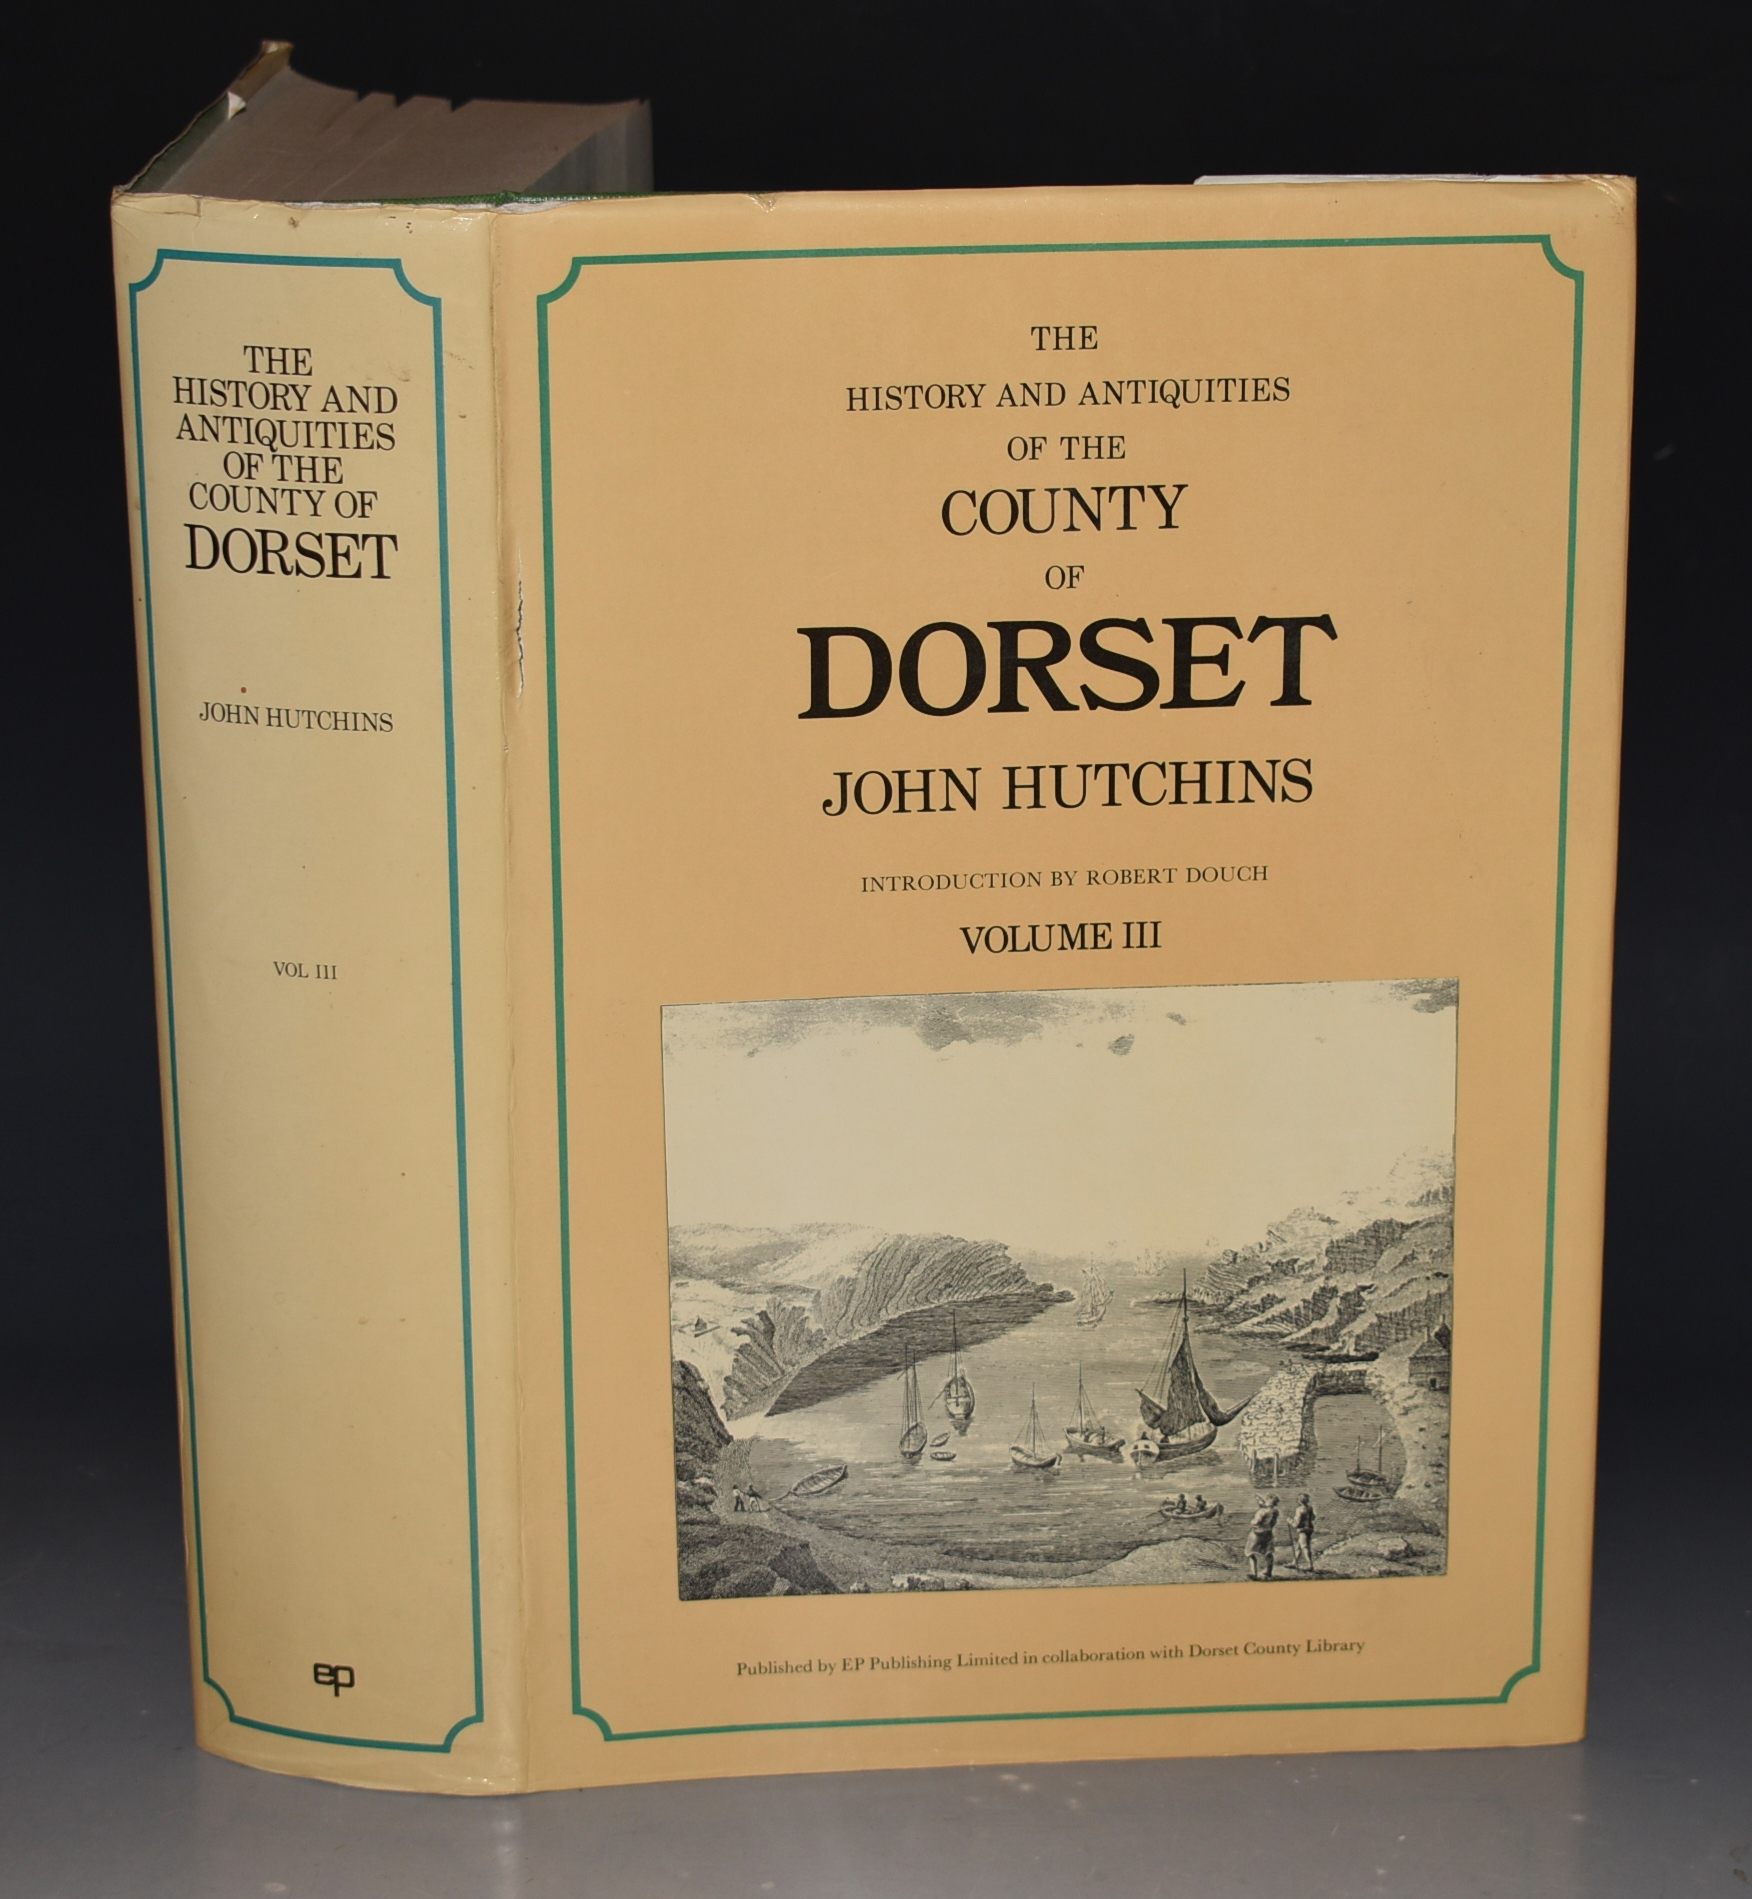 Image for History and Antiquities of the County of Dorset. Volume III. Compiled from the best and most ancient historians, inquisitiones, post mortem, and other valuable records and MSS in the public offices and libraries, and in private hands. With a copy of Domesday Book and the Inquisitio Gheldi for the County: Interpersed with some remarkable particulars of natural history; and adorned with a correct map of the county, and views of antiquities, seats of the nobility and gentry, &c. Reprint of the third edition by W.Shipp and J.W.Hodson. With a new introduction by Robert Douch. Volume III only.